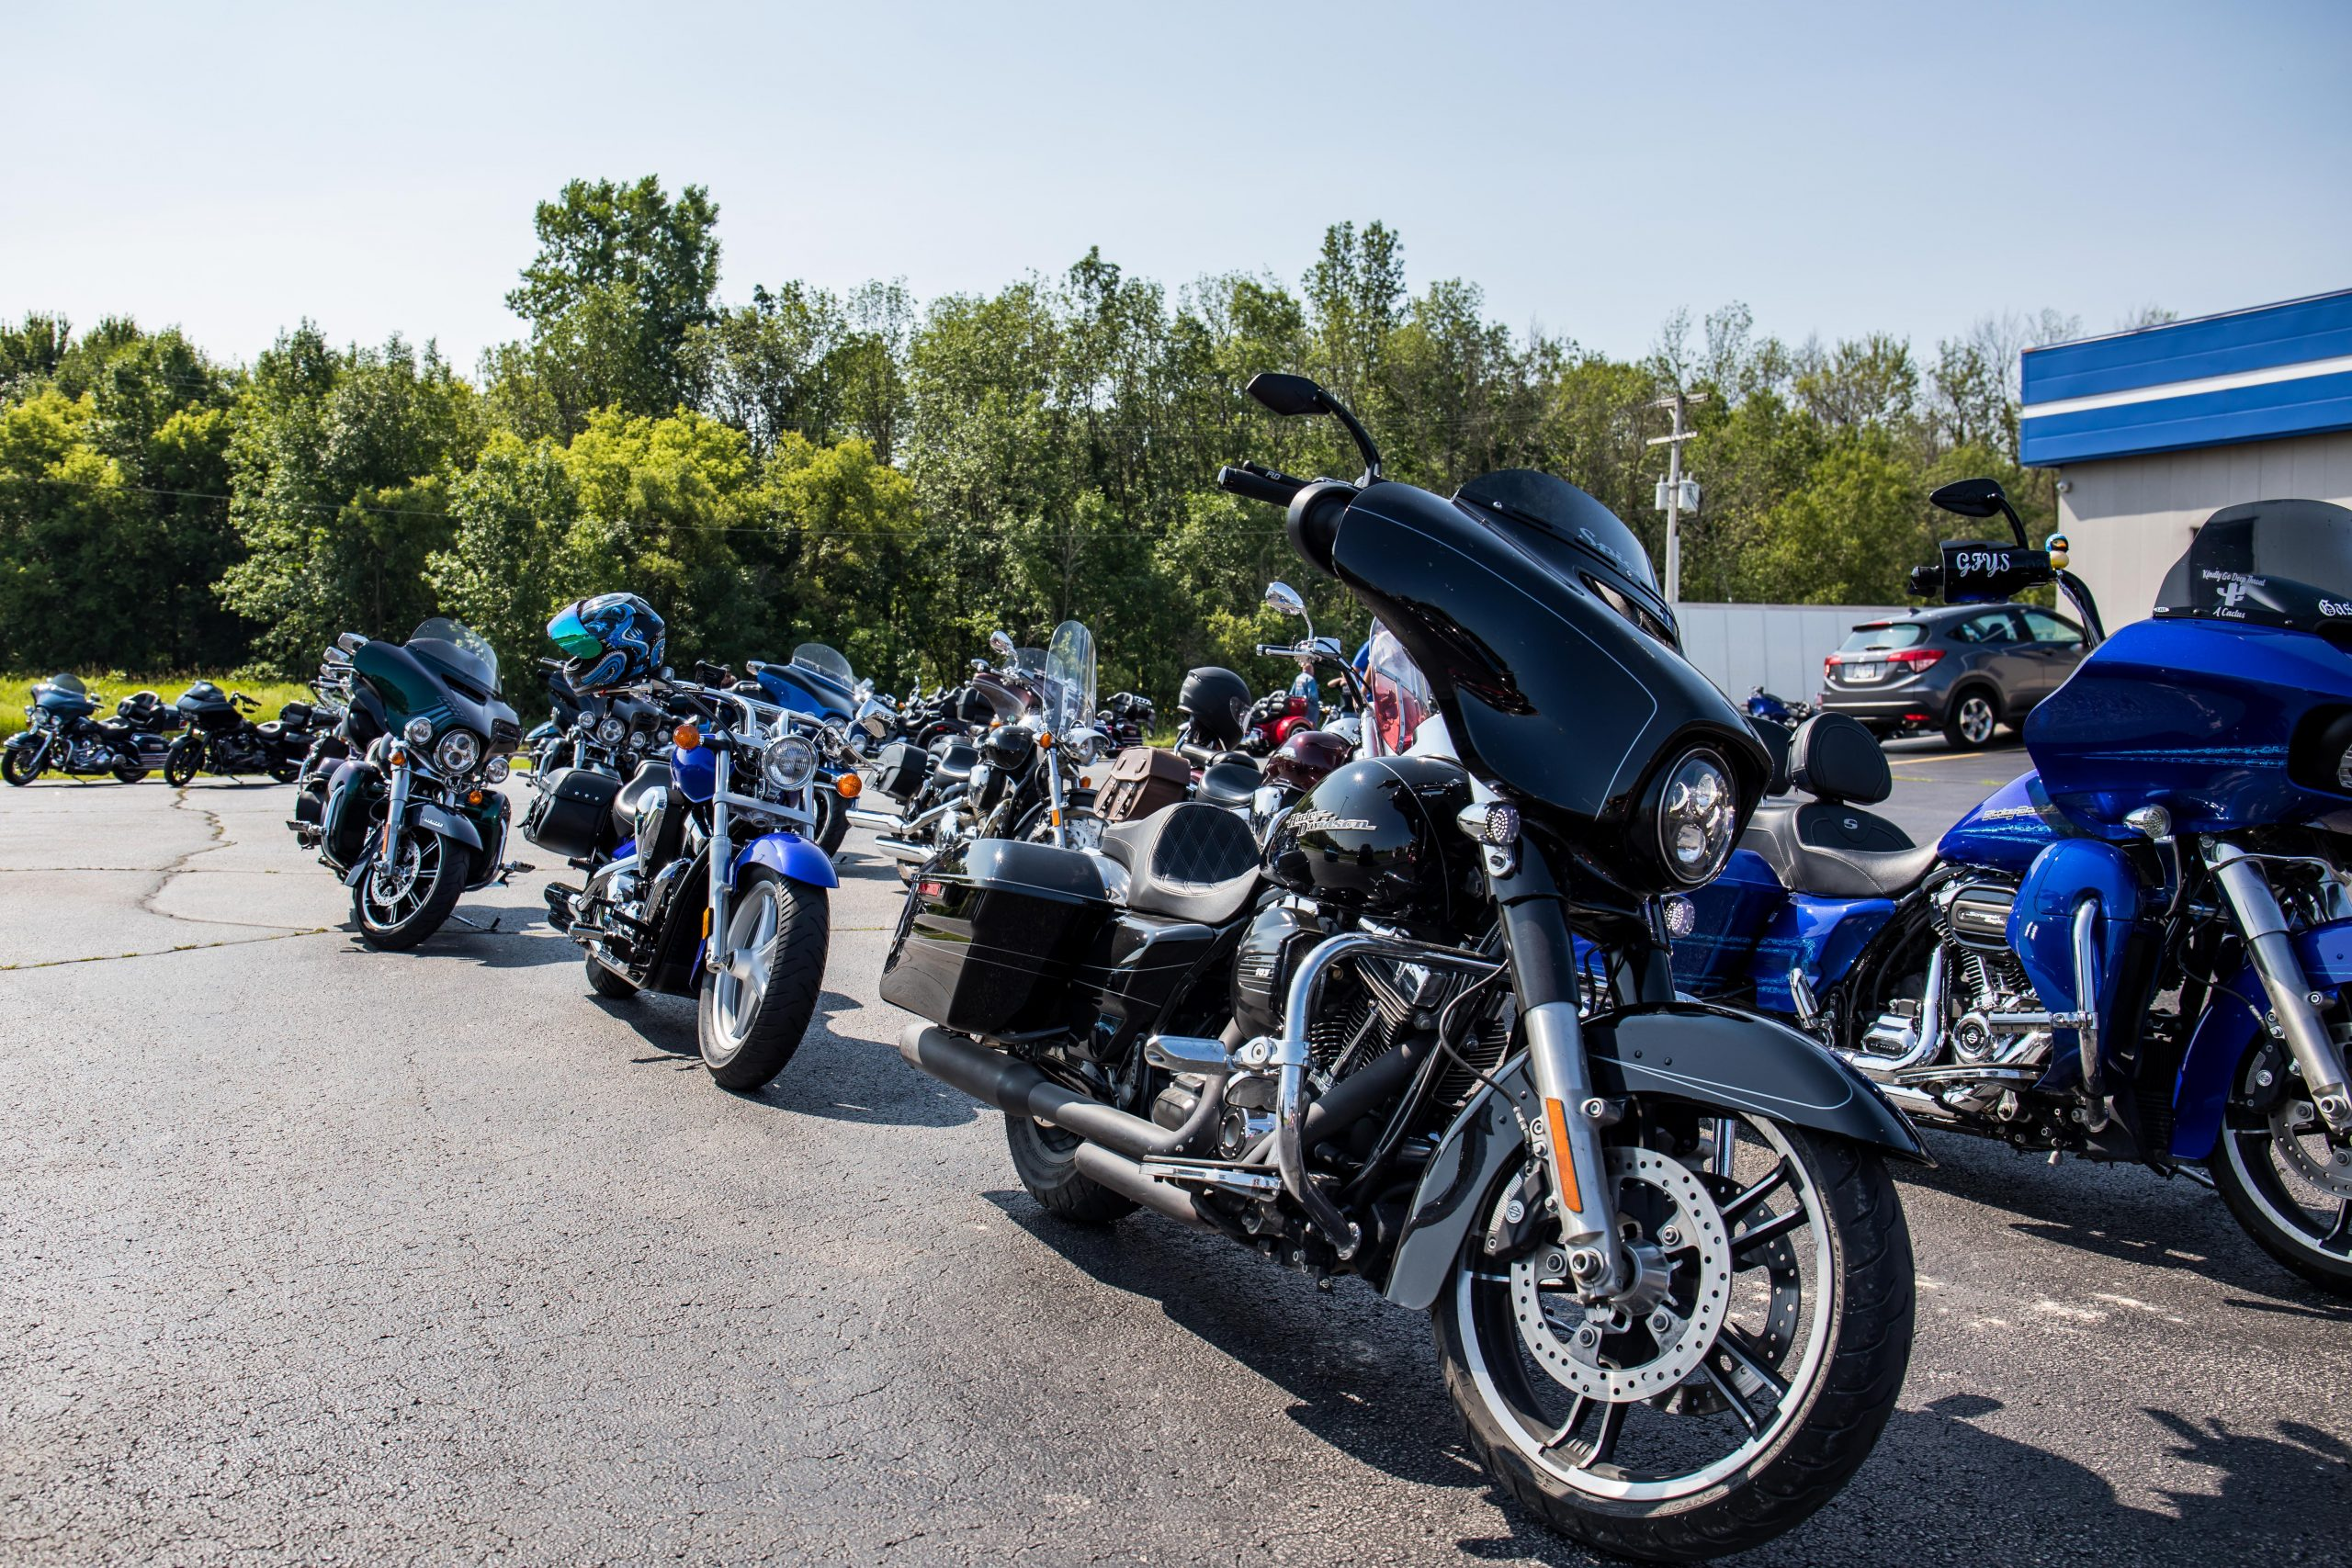 IAM Midwest Territory's 'Rides for Guides' Raises Over $11.5K for Guide Dogs of America